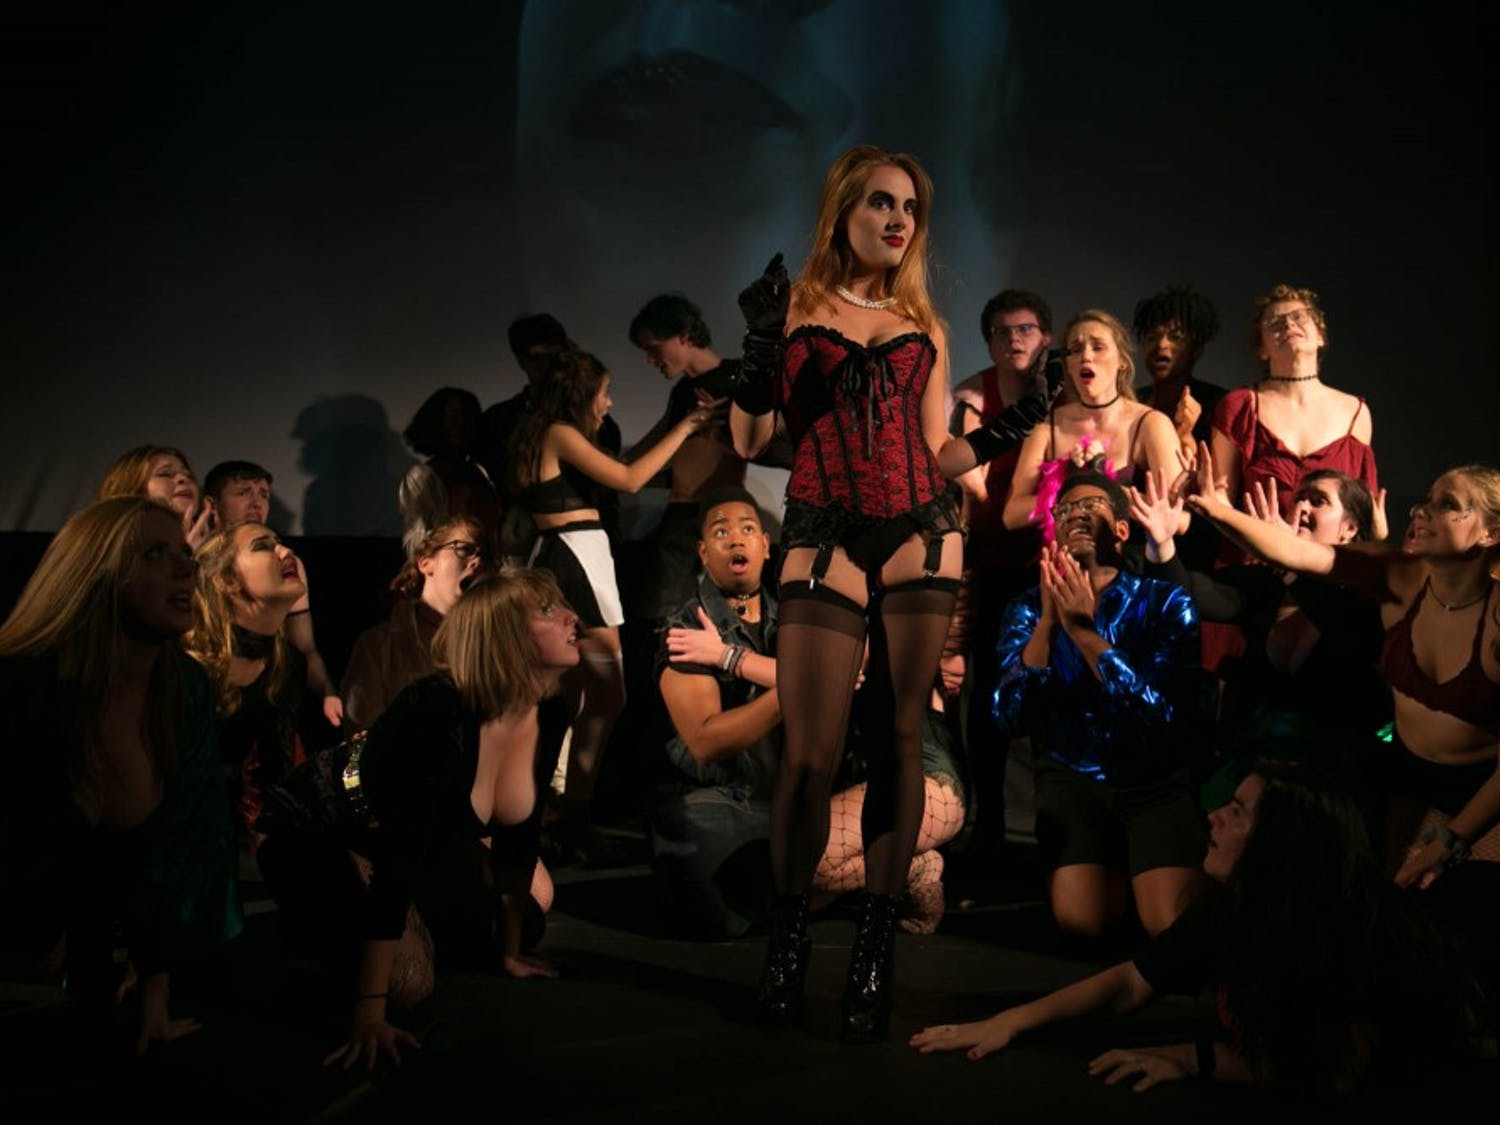 Pauper Players rehearse for the Rocky Horror Picture Show in Varsity Theatre on Tuesday, Oct. 23, 2018.